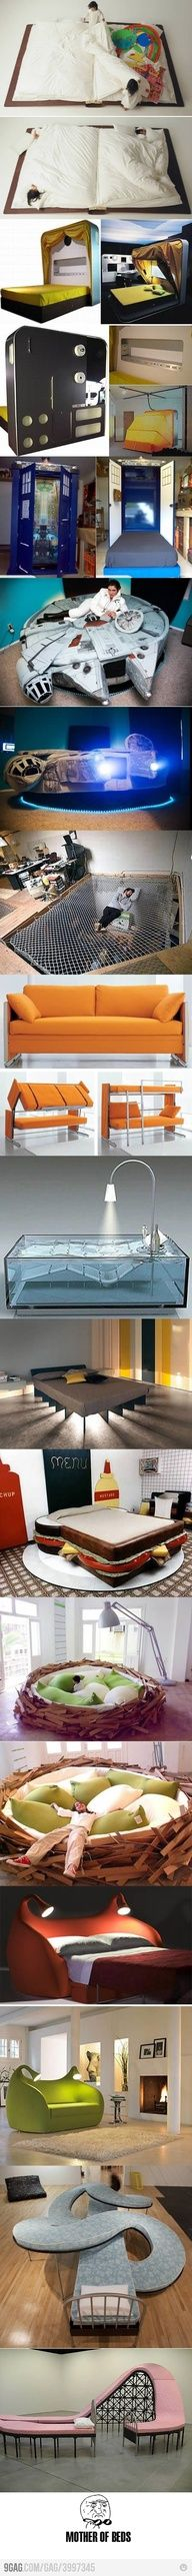 Gotta love it! Quirky, crazy and all around amazing beds.